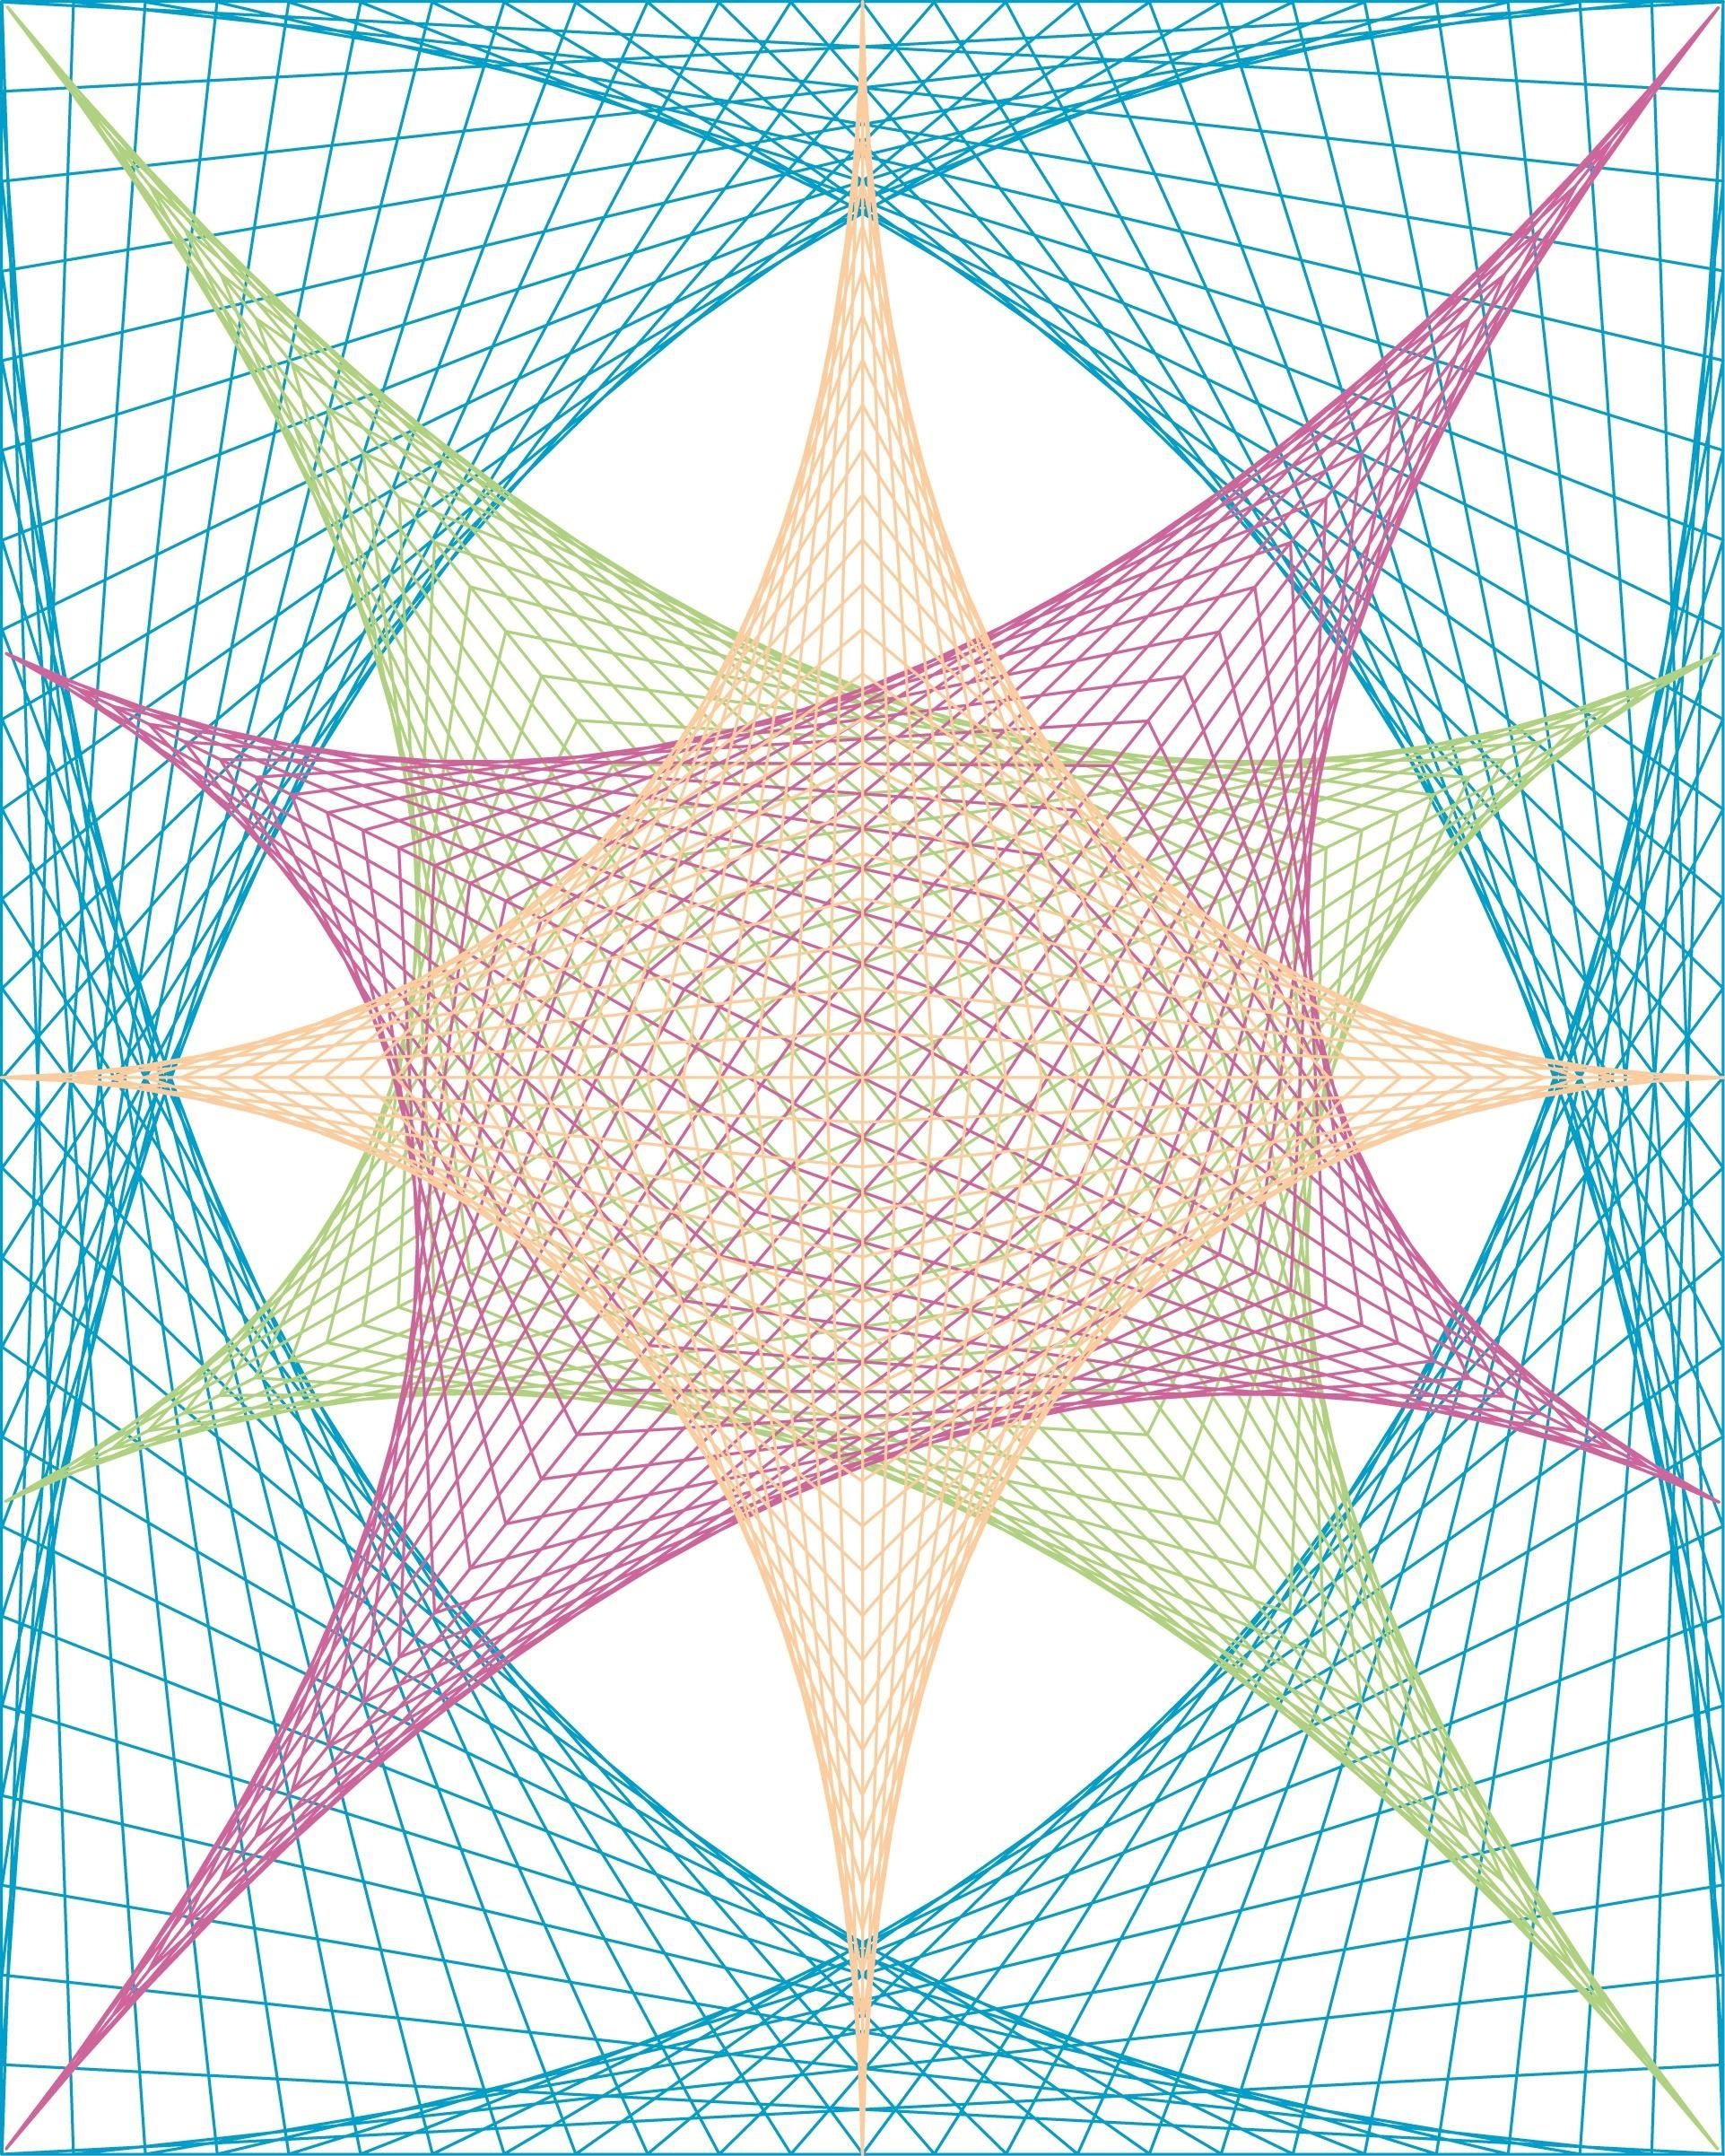 Straight Line String Art : How to create parabolic curves using straight lines high